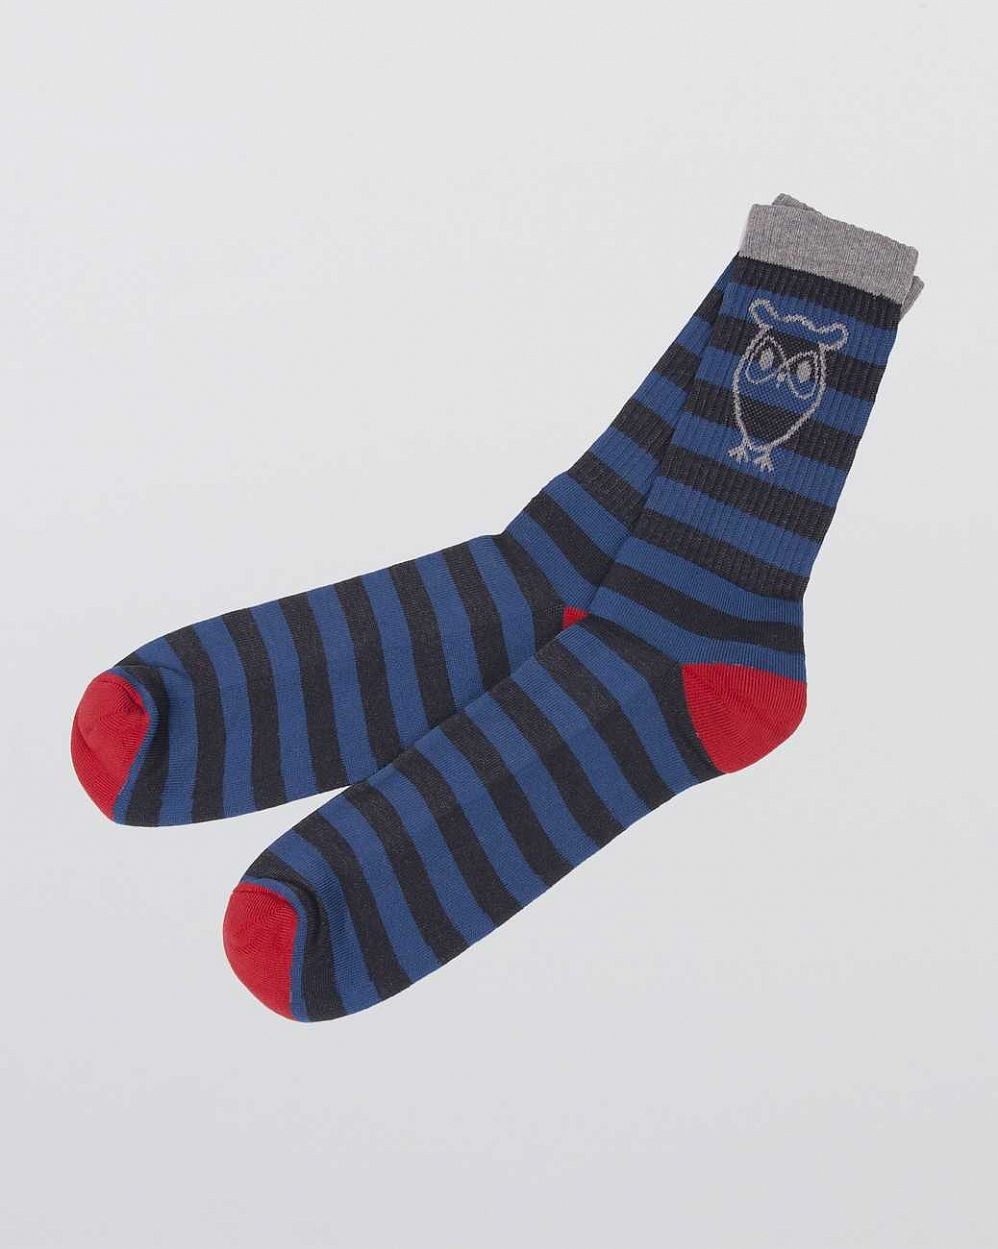 Носки Knowledge Cotton Apparel Benjamin Tennis Sock 2-pack Red Royal интернет-магазин в Москве